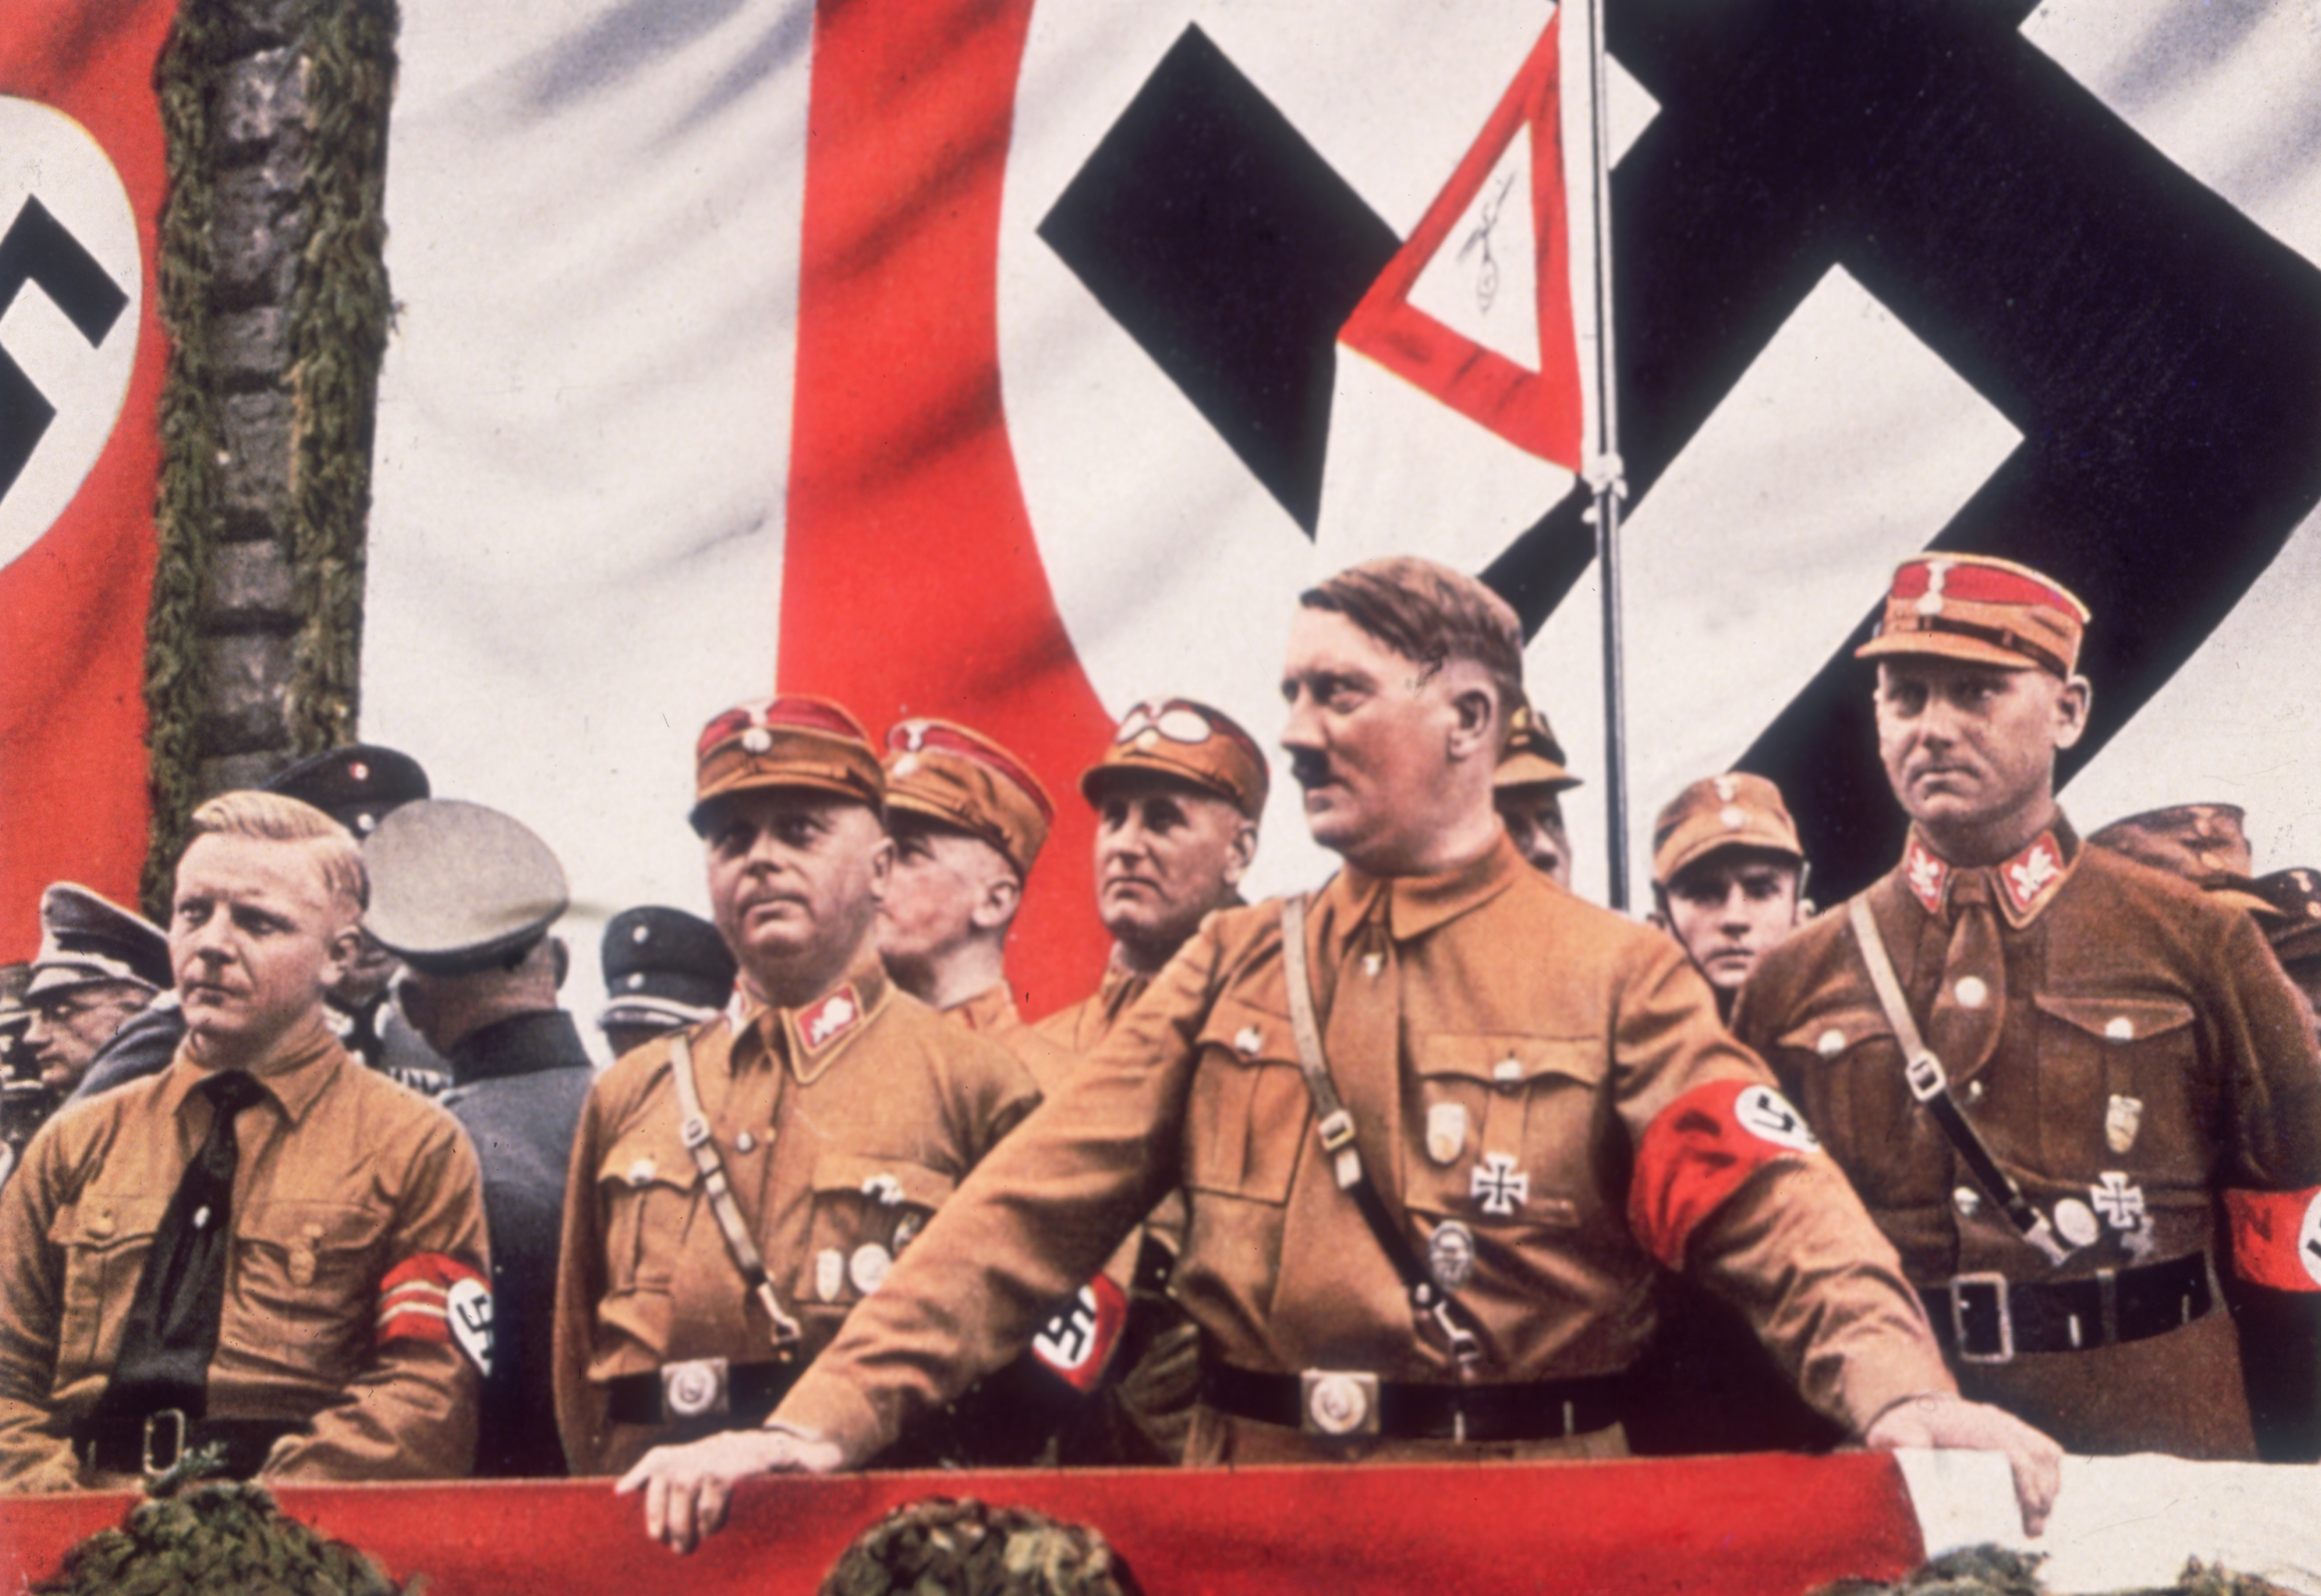 German dictator Adolf Hitler addresses a rally in Germany around 1933.